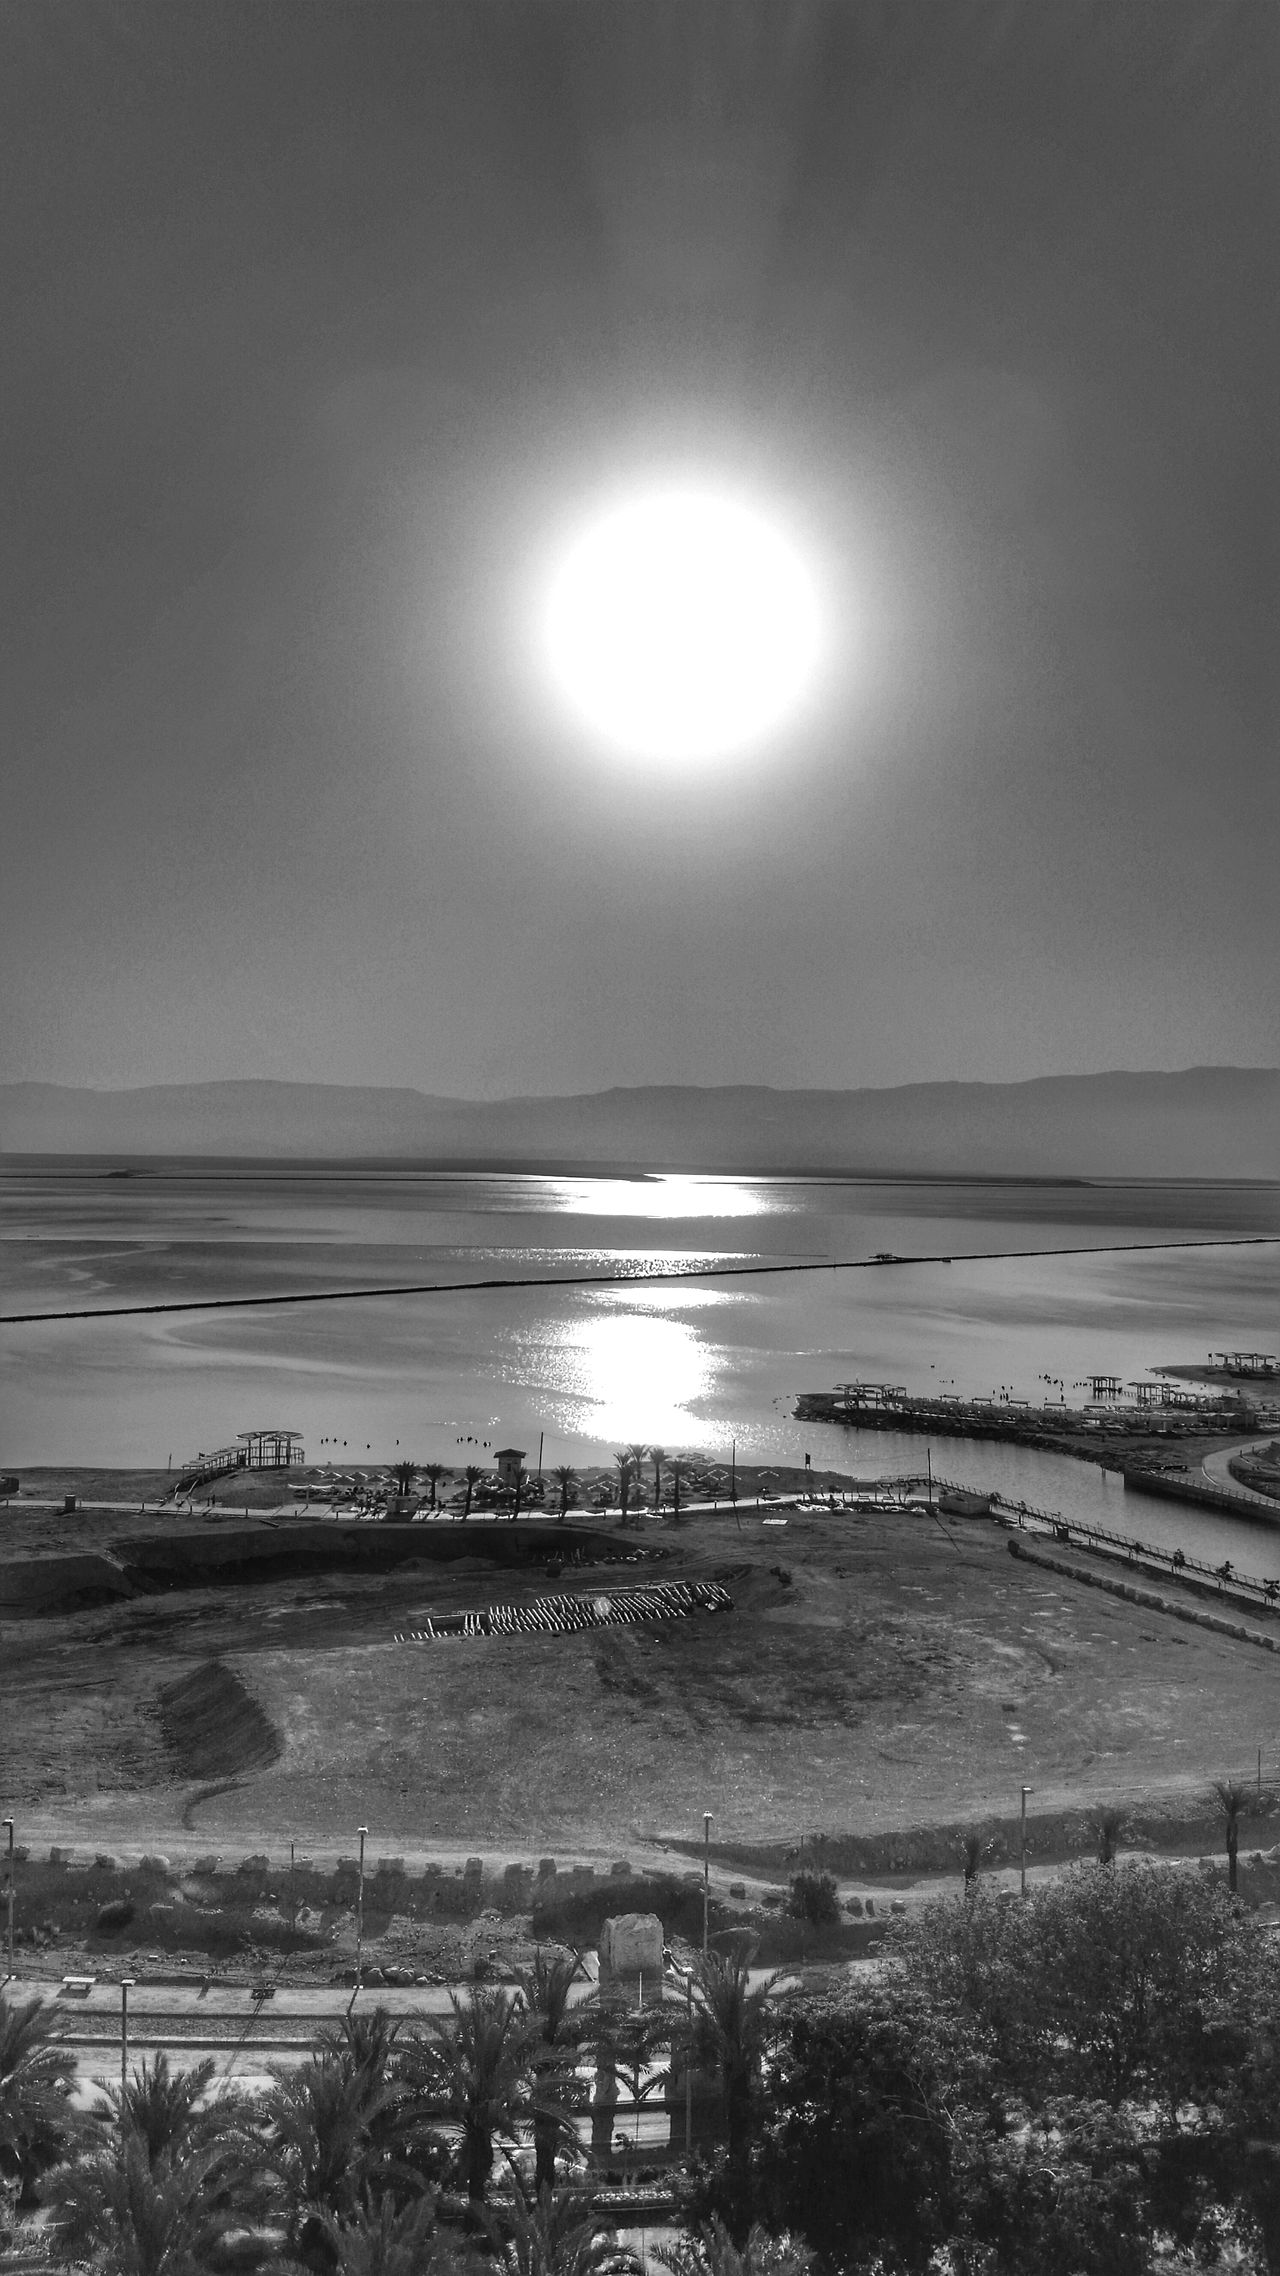 View of the dead sea✴ GNight ⭐ Deadsea Deadsea_israel Nature Horizon Over Water Tranquility No People Getting Inspired Israel Sea Nature Photography Nature_collection Eye4photography  Sunrise_sunsets_aroundworld EyeEm Nature Lover Israel_times Israeloftheday Israelbest Popular Photos Sun_collection Eye4photography  Blackandwhite Photography Sunset_collection Black And White Photography From My Point Of View